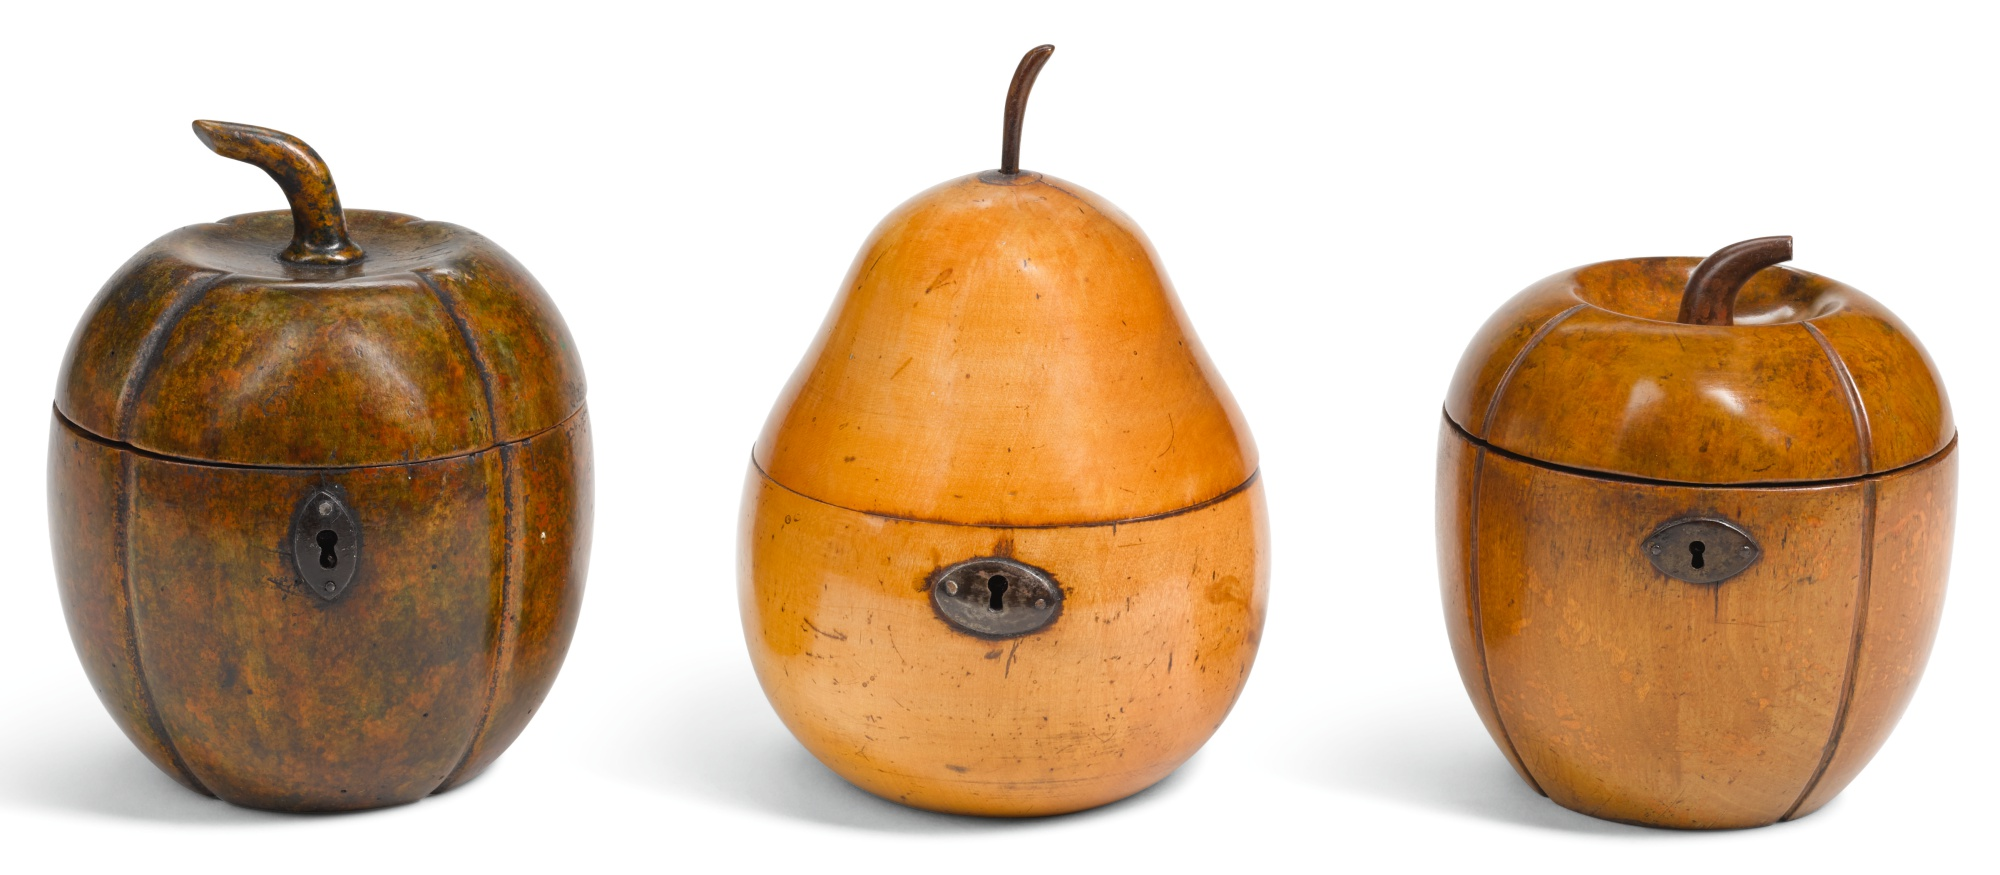 THREE GEORGE III FRUITWOOD TEA CADDIES, CIRCA 1800, ONE IN THE FORM OF A PEAR, TWO IN THE FORM OF A MELON